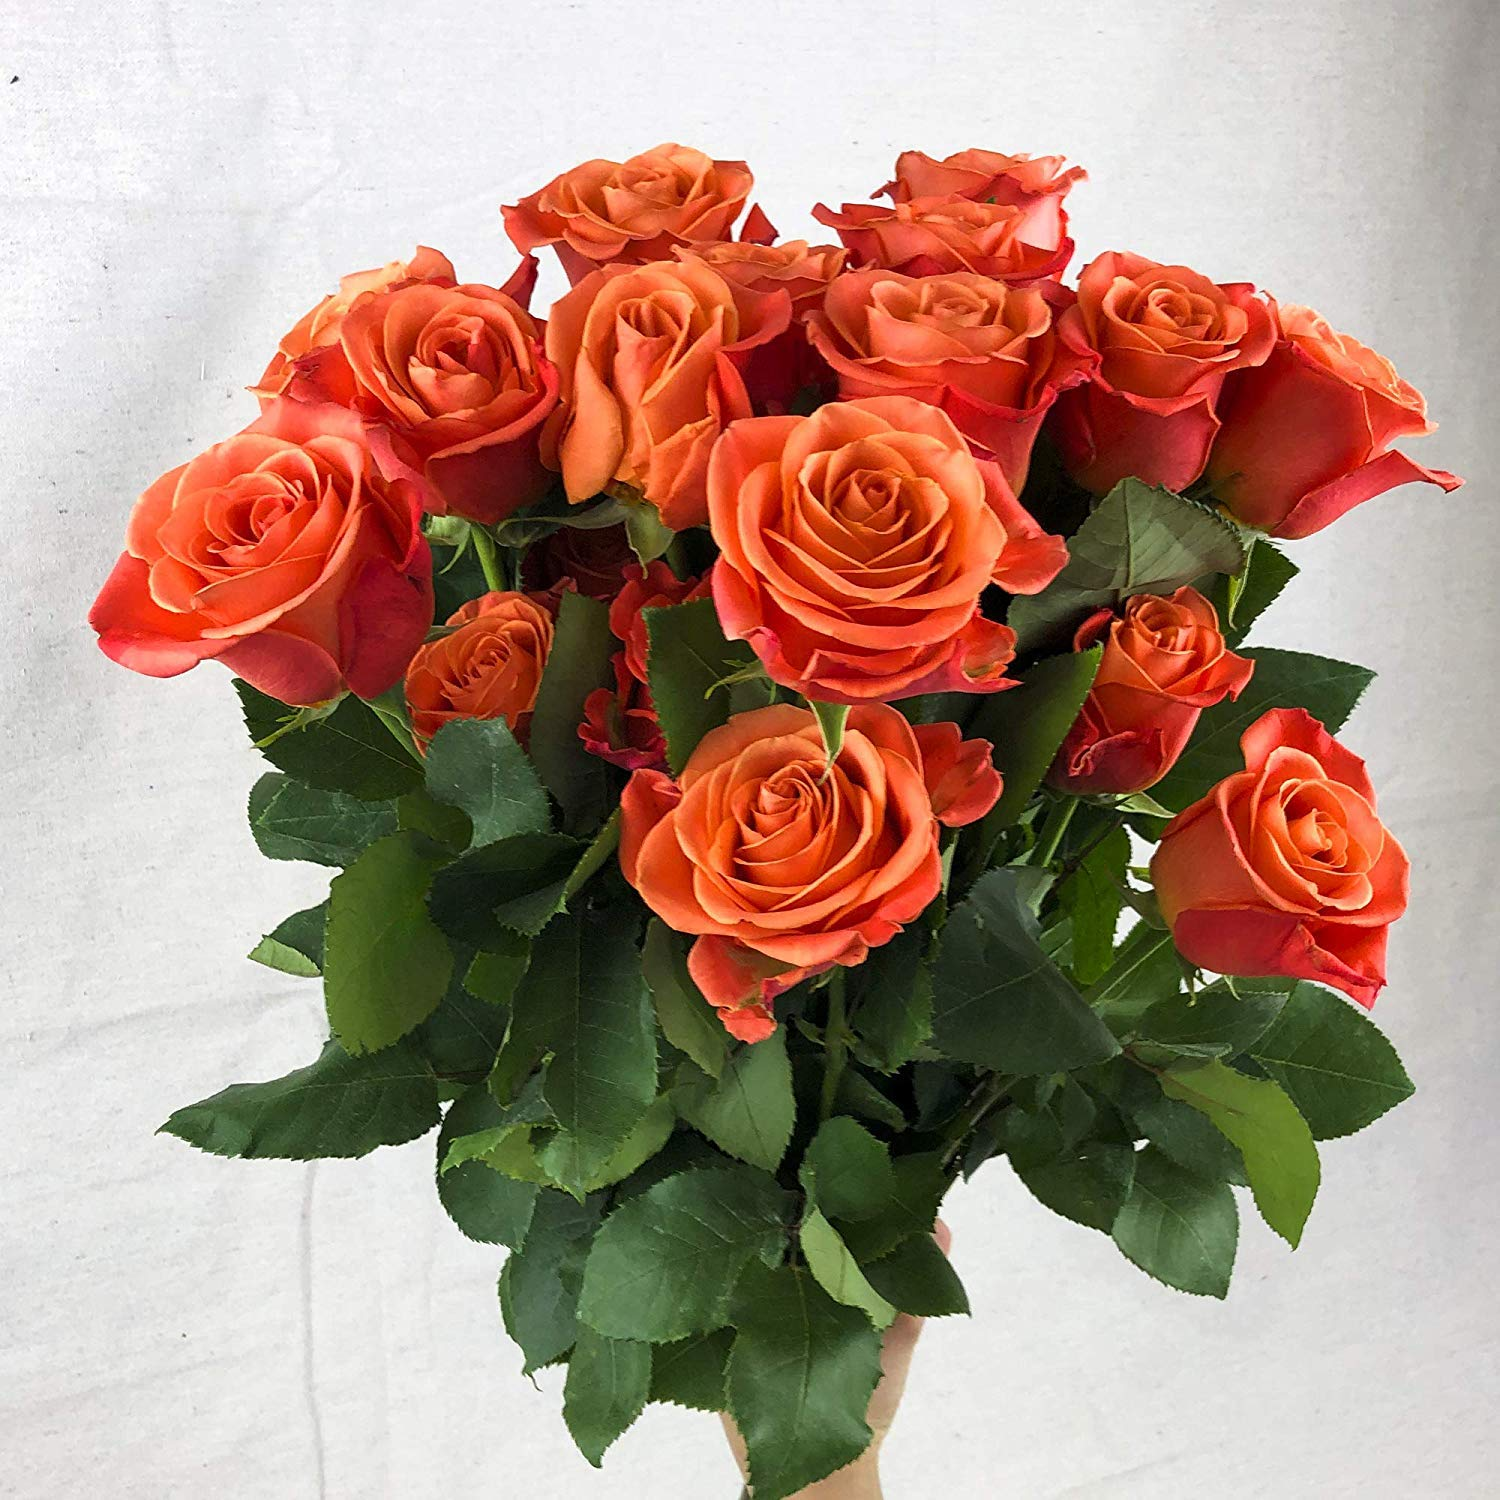 Green Choice Flowers - 36 (3 Dozen) Premium Orange Fresh Roses with 20 inch Long Stem Farm Fresh Flowers Beautiful Orange Rose Flower Cut Per Order Direct from Farm Free Fast Delivery Long Lasting